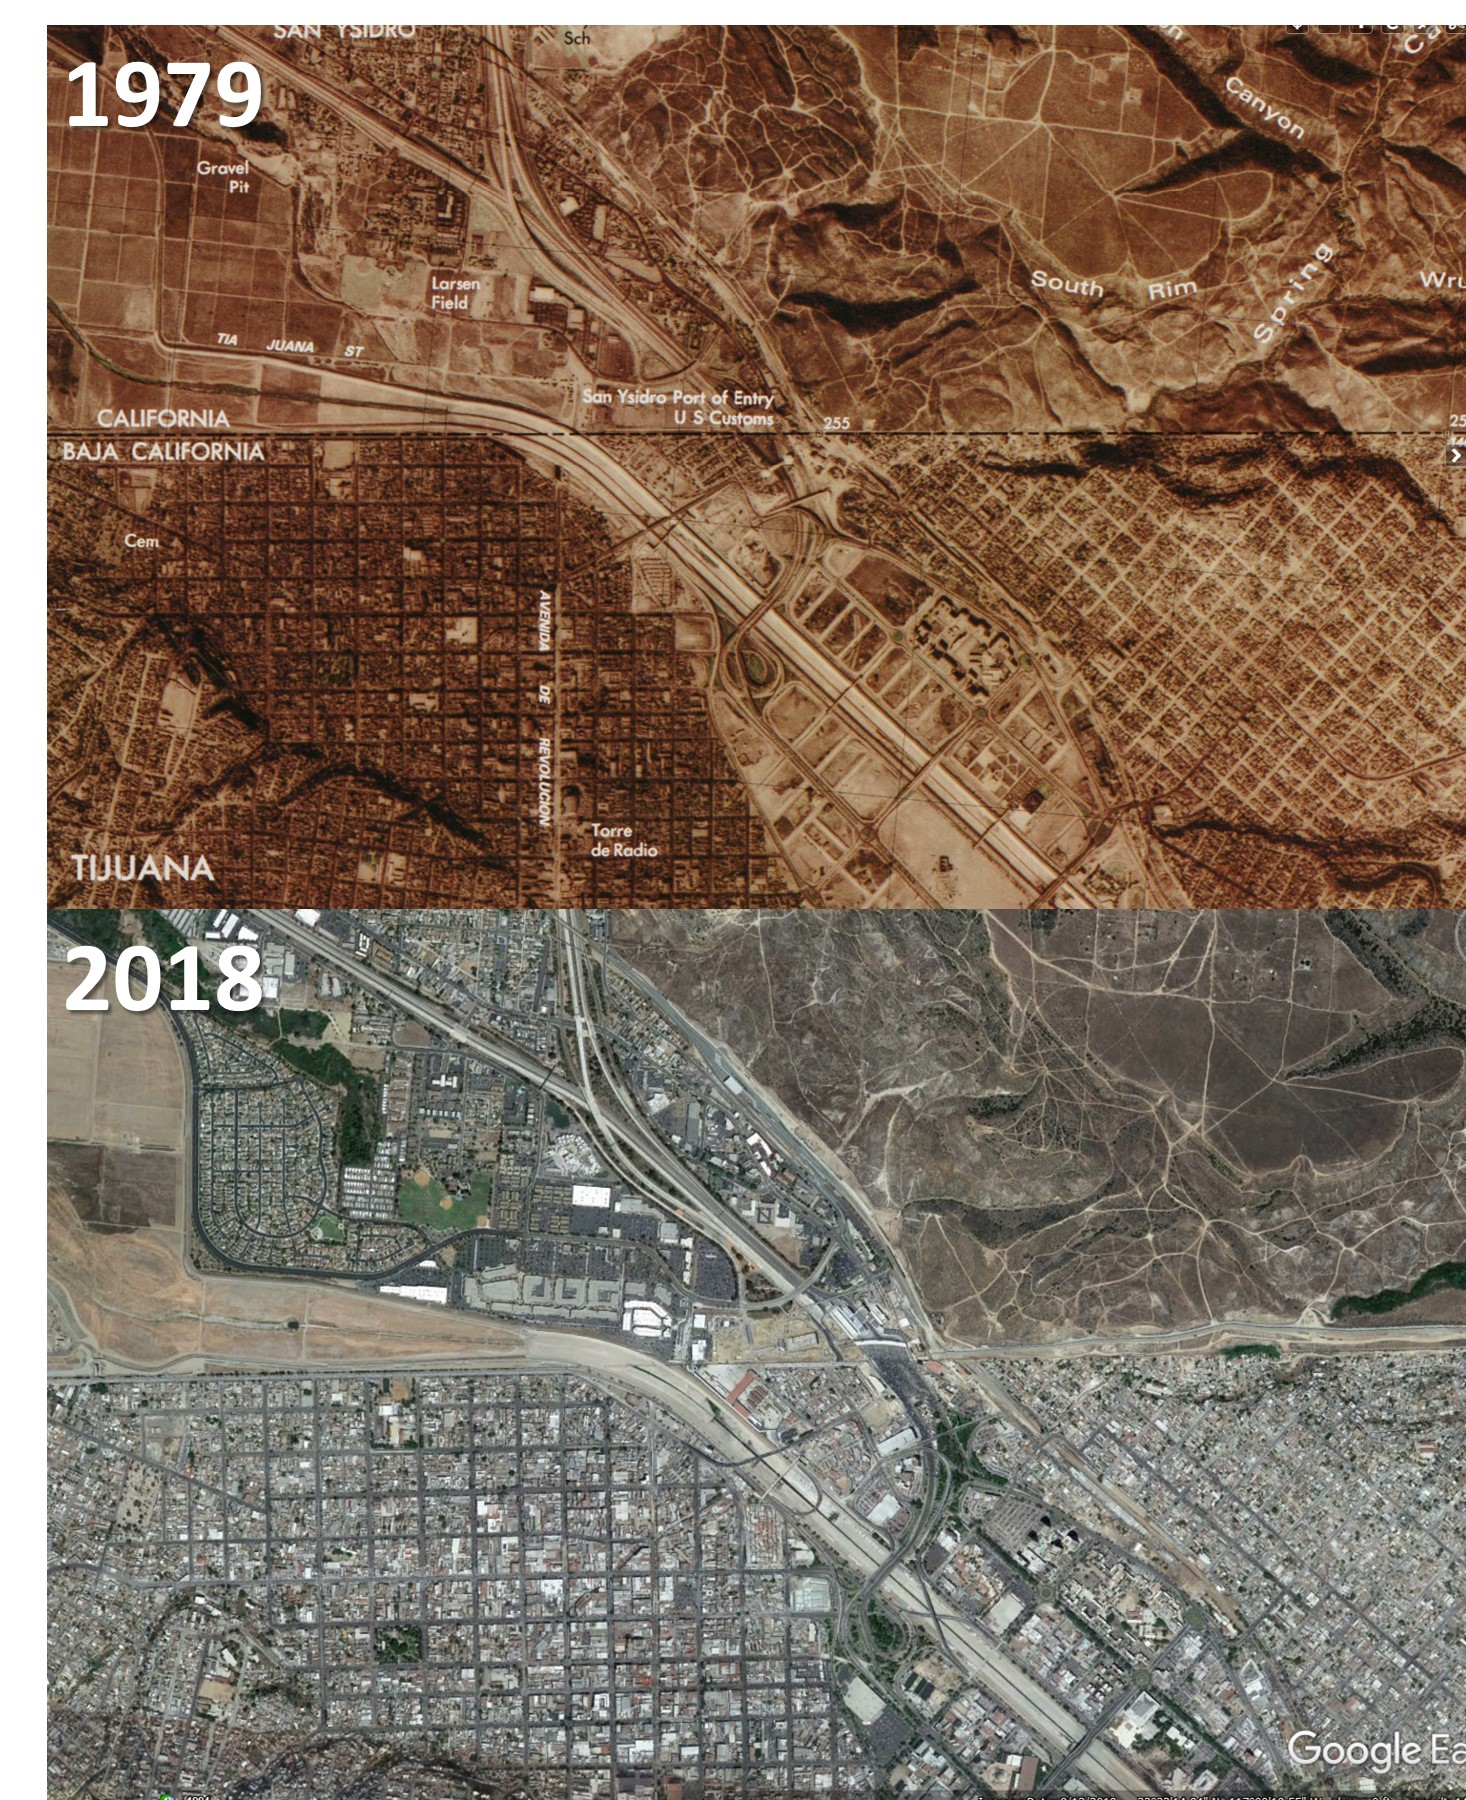 aerial maps of the US/Mexico border from 1979 and 2018